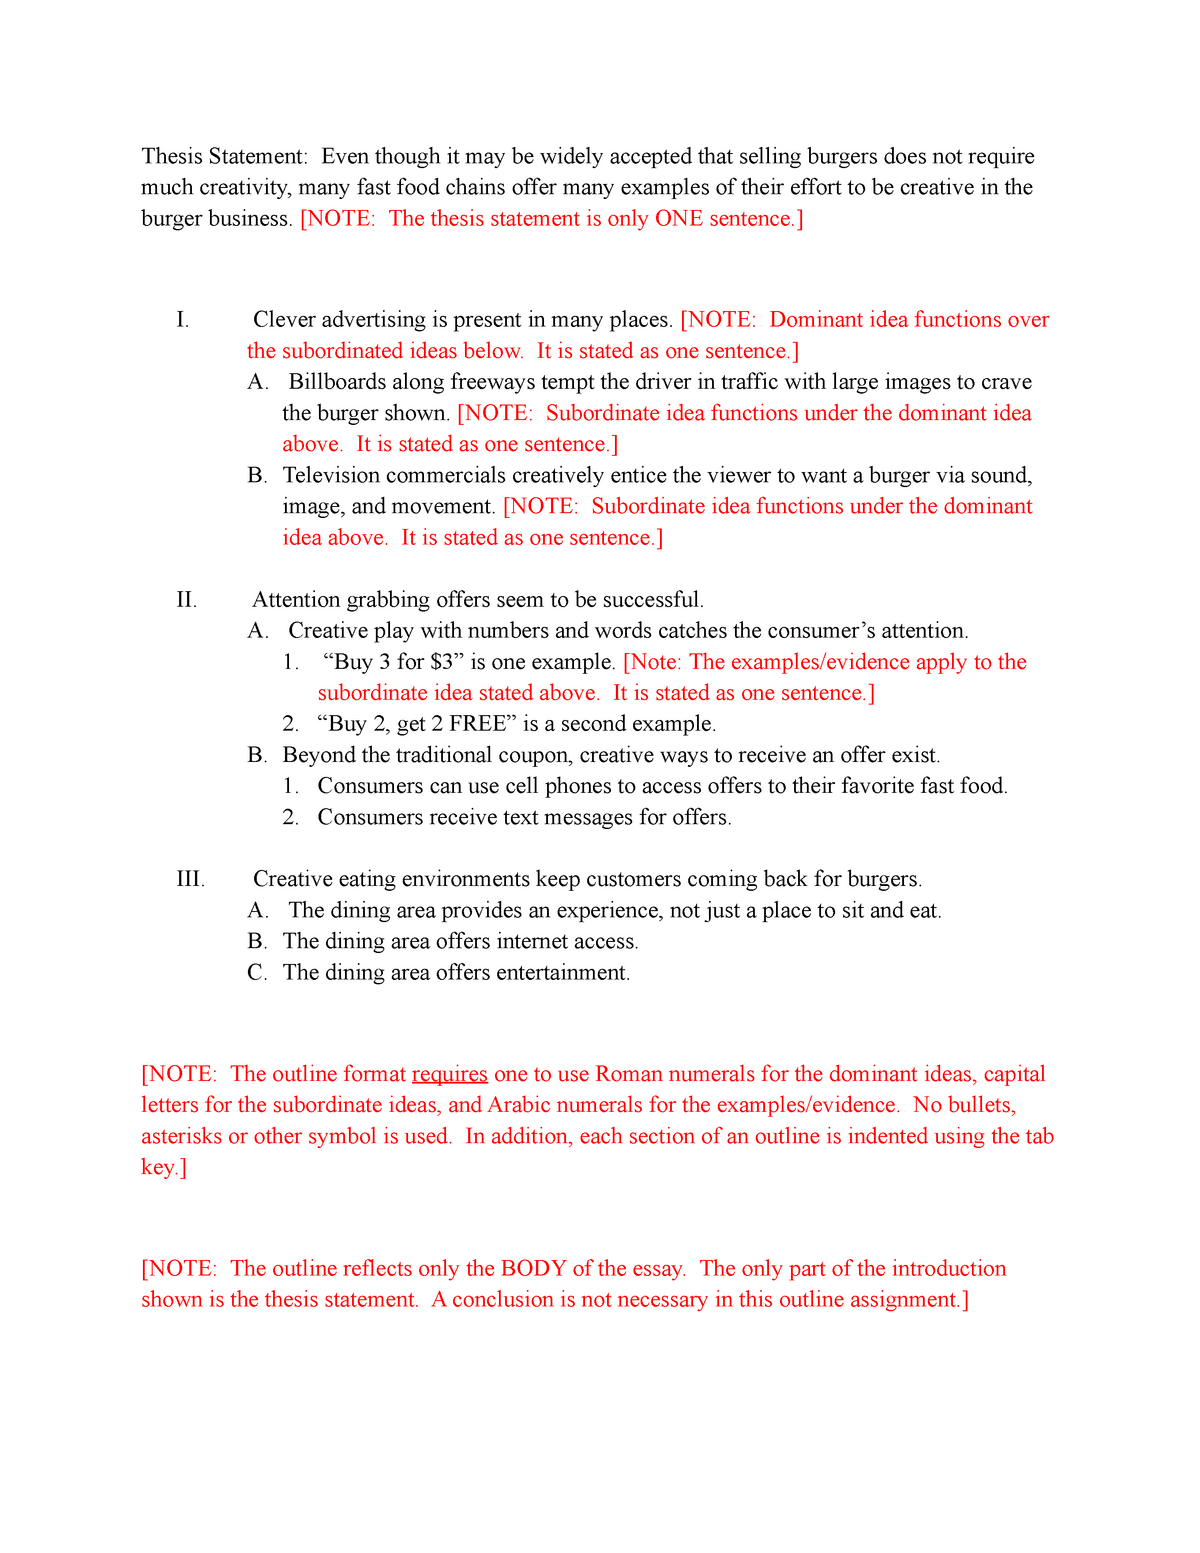 outline and partial essay for creativity essay   engl a freshman  outline and partial essay for creativity essay   engl a freshman  composition   studocu